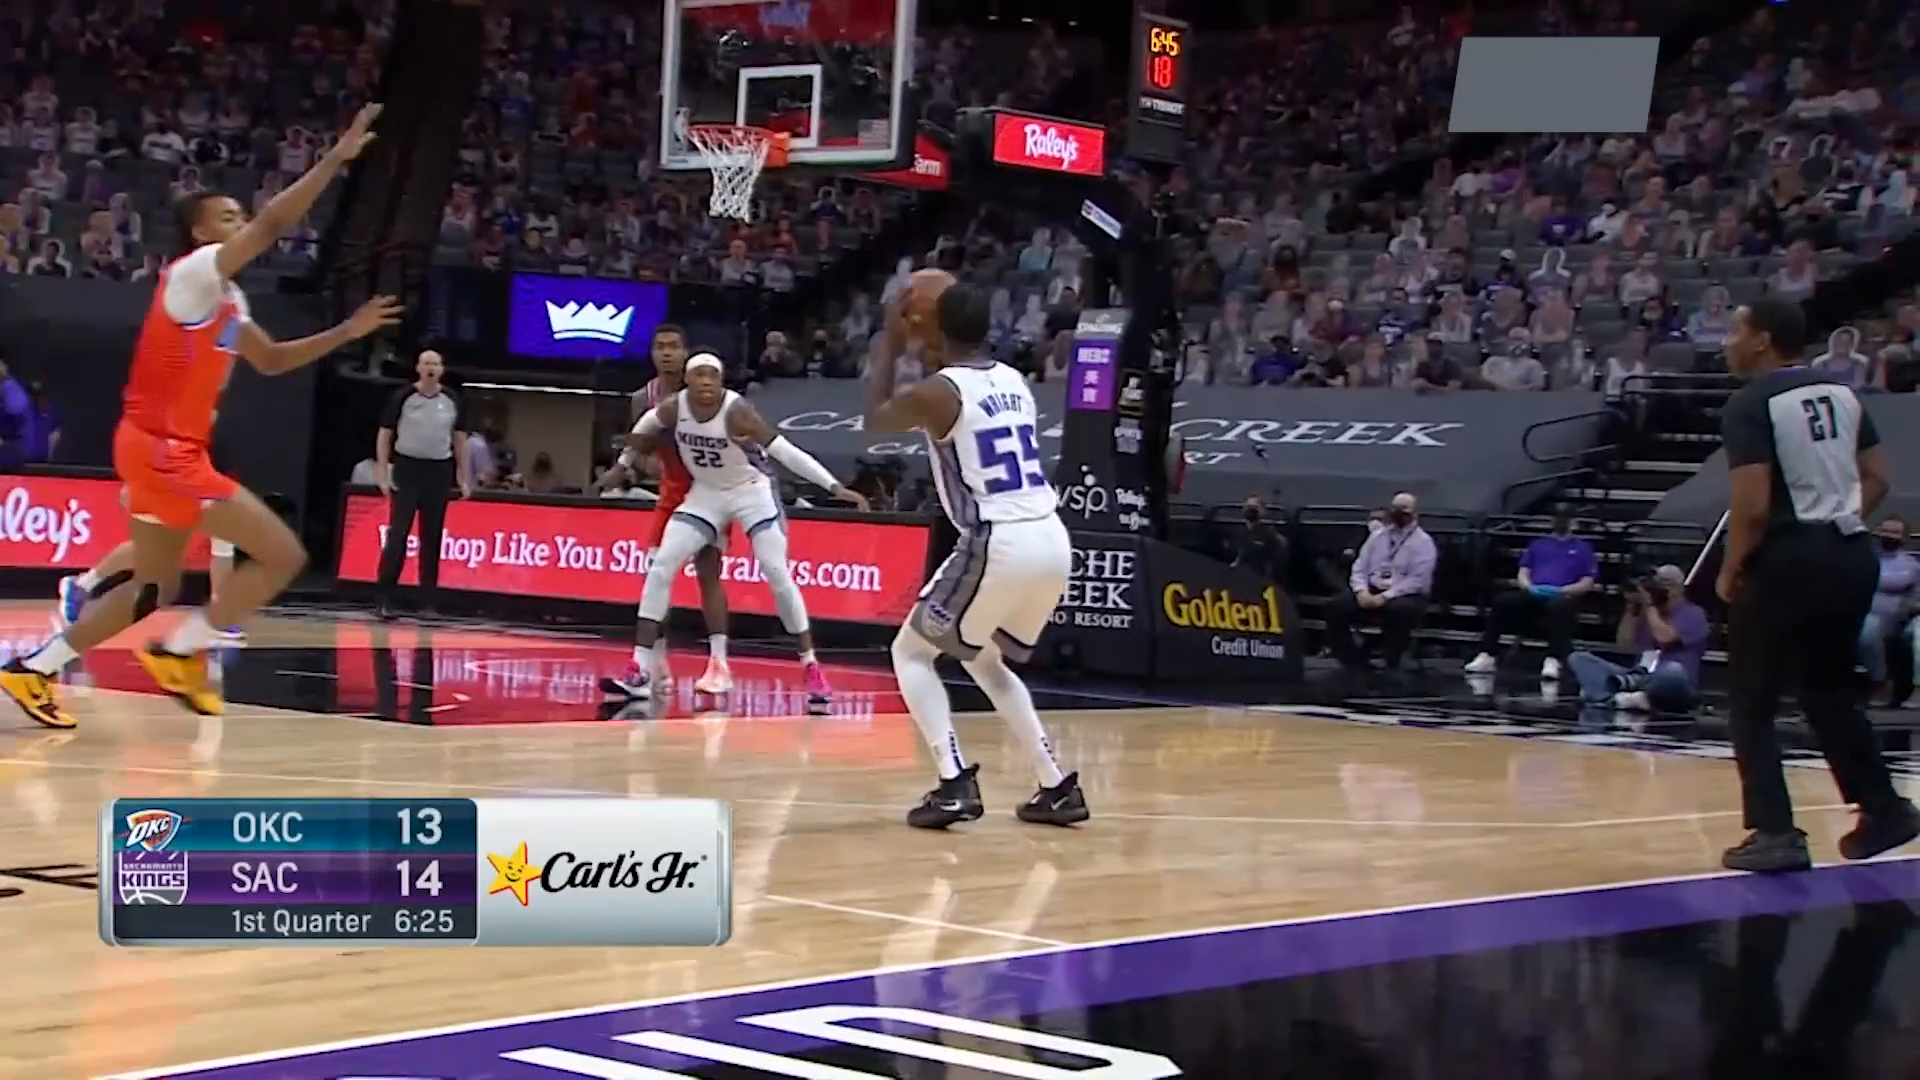 Delon Wright Starts Off Hot with the Triple!